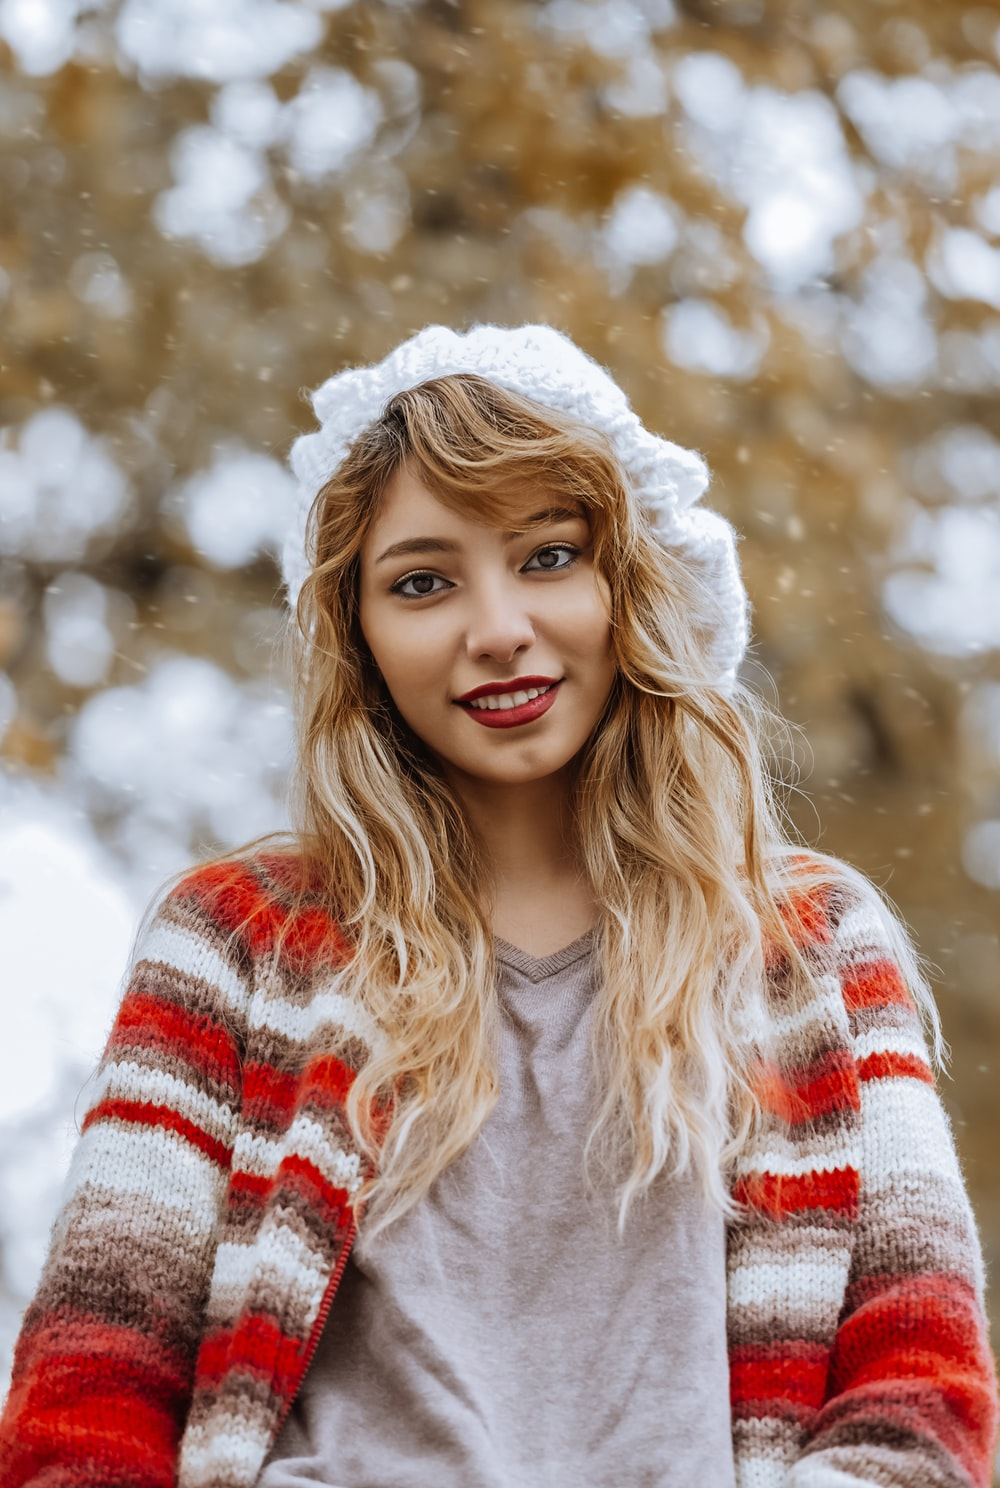 woman in red and white sweater